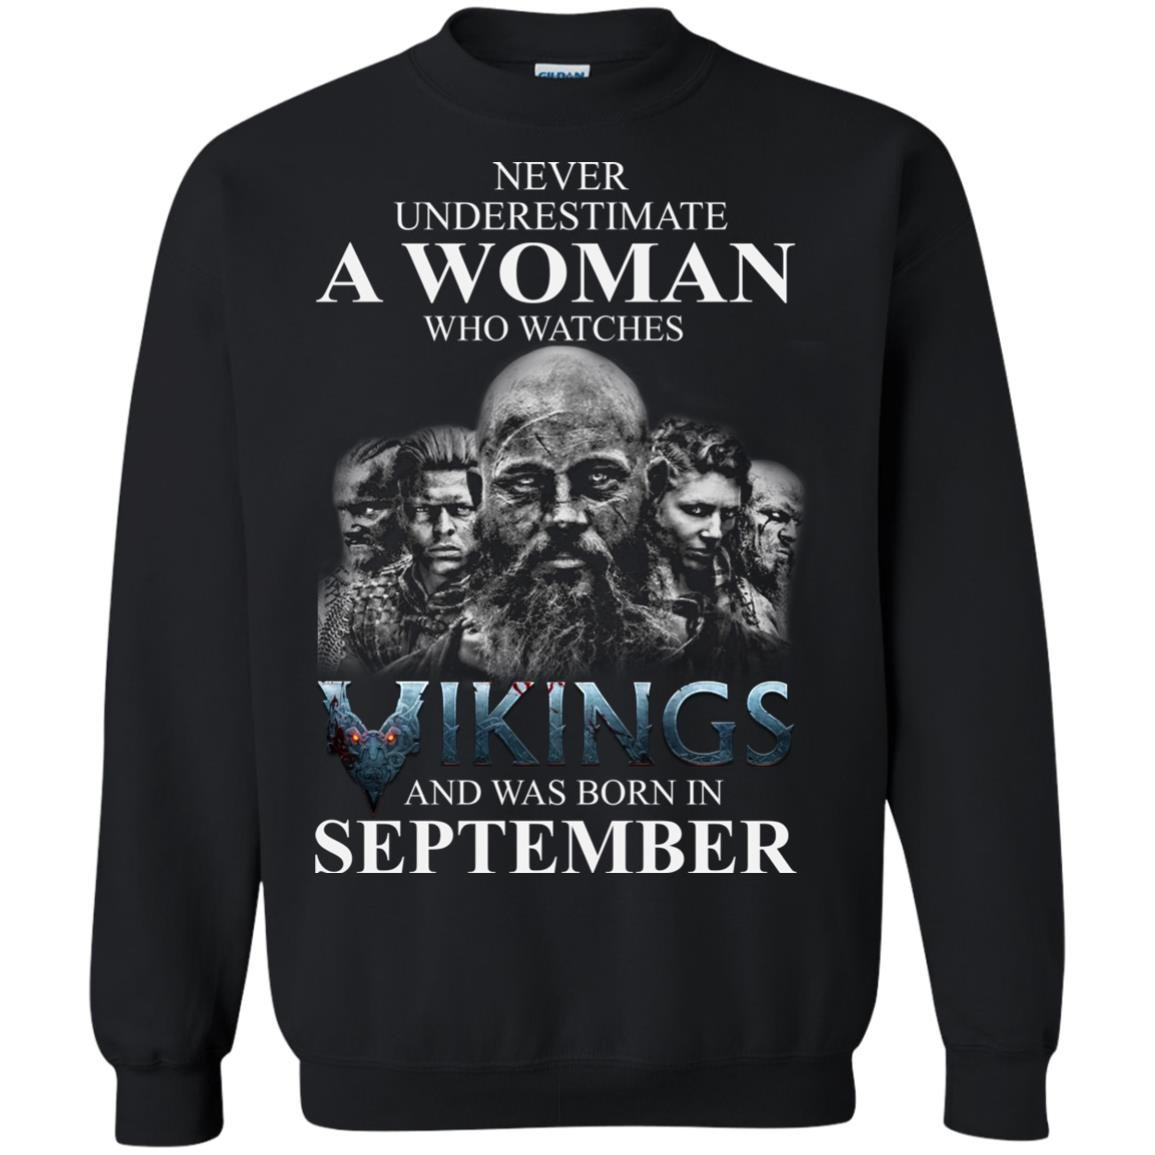 image 1261 - Never Underestimate A woman who watches Vikings and was born in September shirt